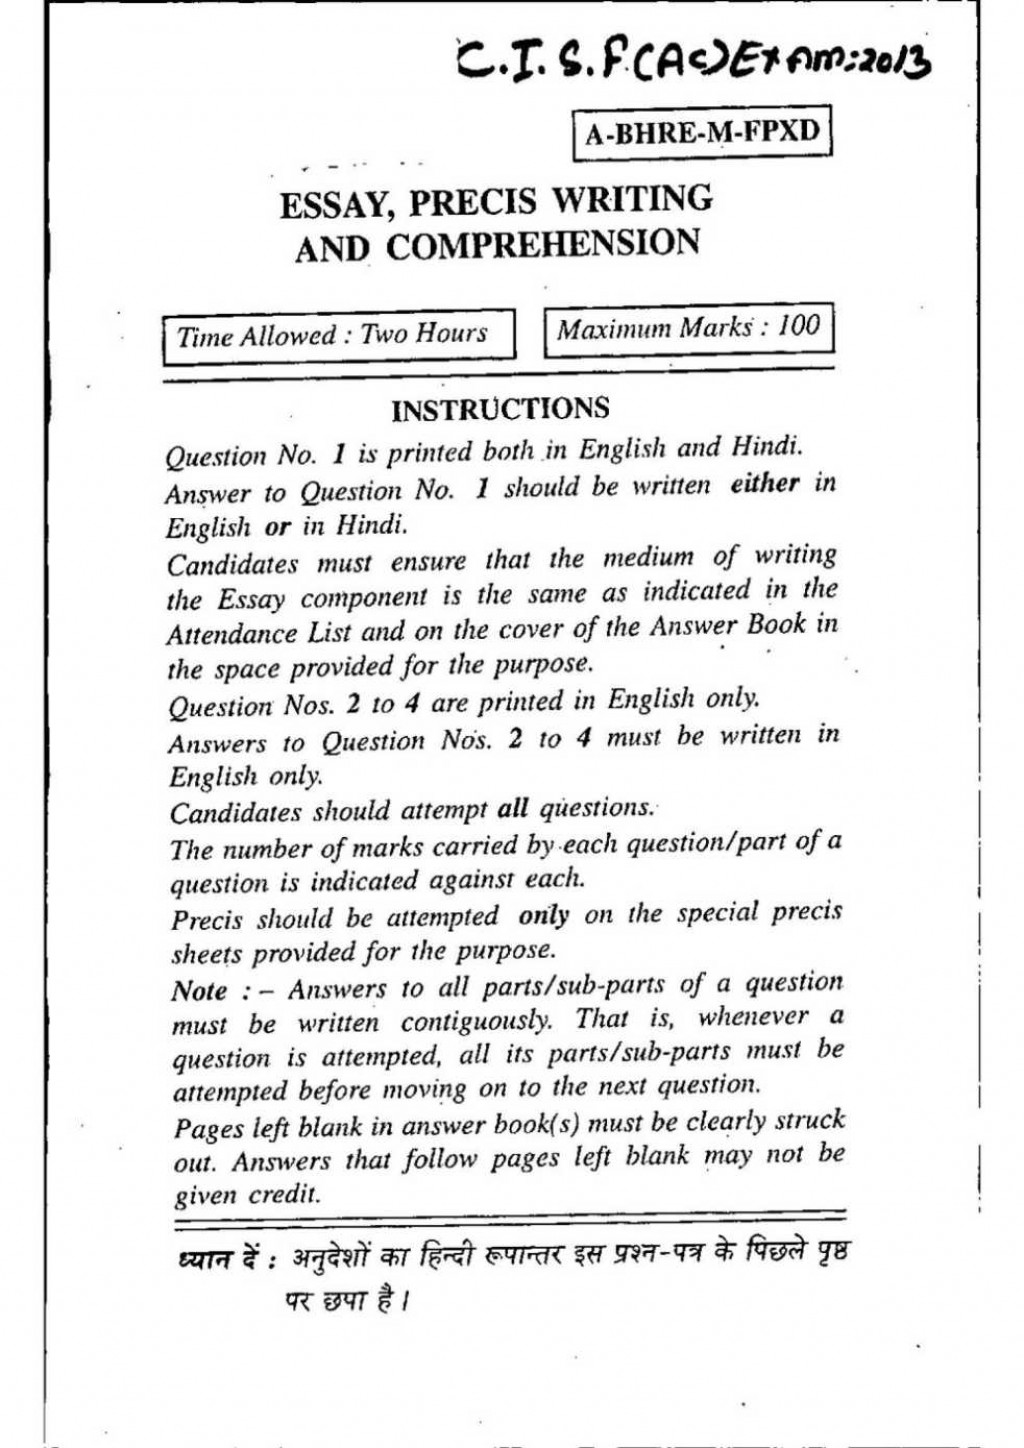 023 Music Essay Upsc Cisf Ltd Departmental Competitive Exam Precis Writing And Compreh Best Contest Introduction 2 Questions Large